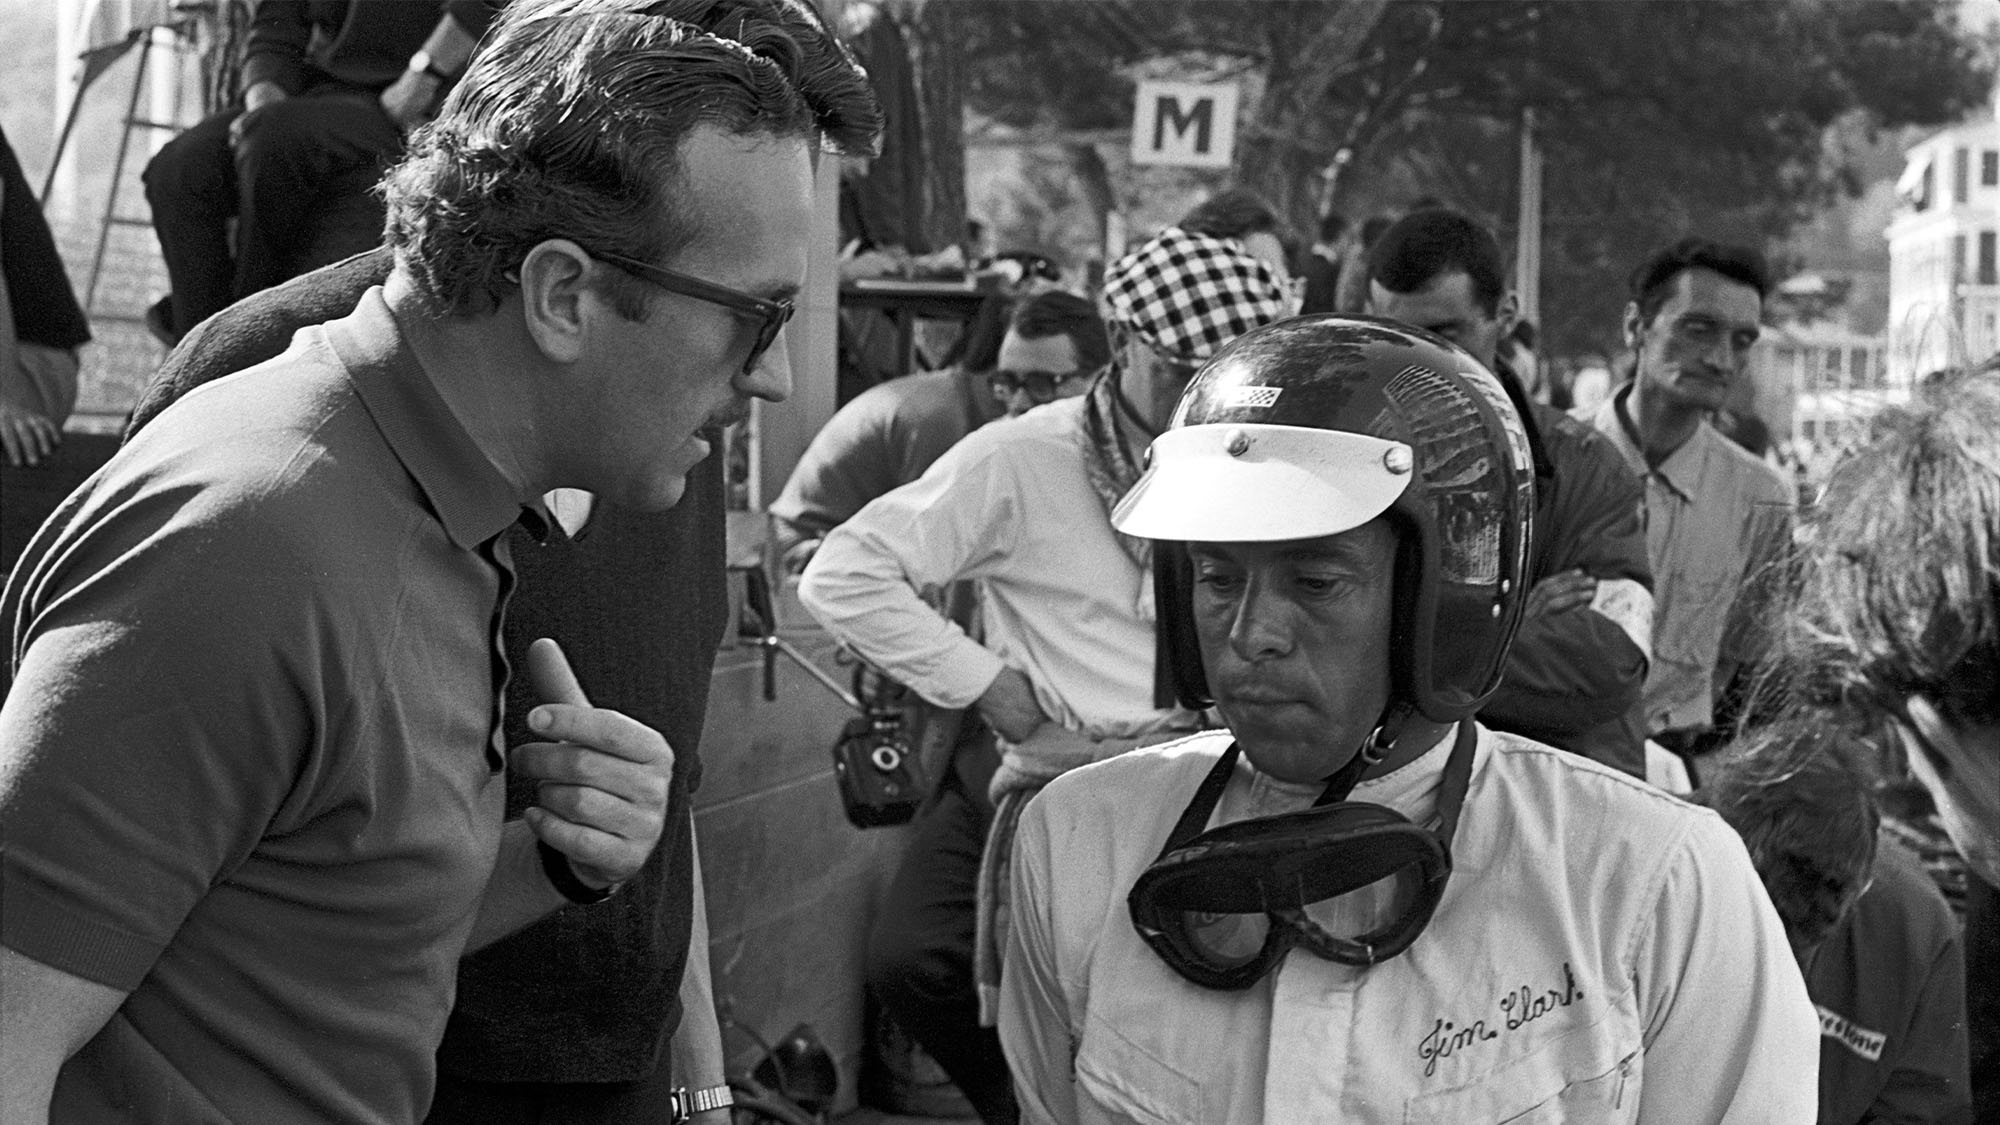 Jim Clark, Colin Chapman, Grand Prix of Monaco, Monaco, 22 May 1966. (Photo by Bernard Cahier/Getty Images)